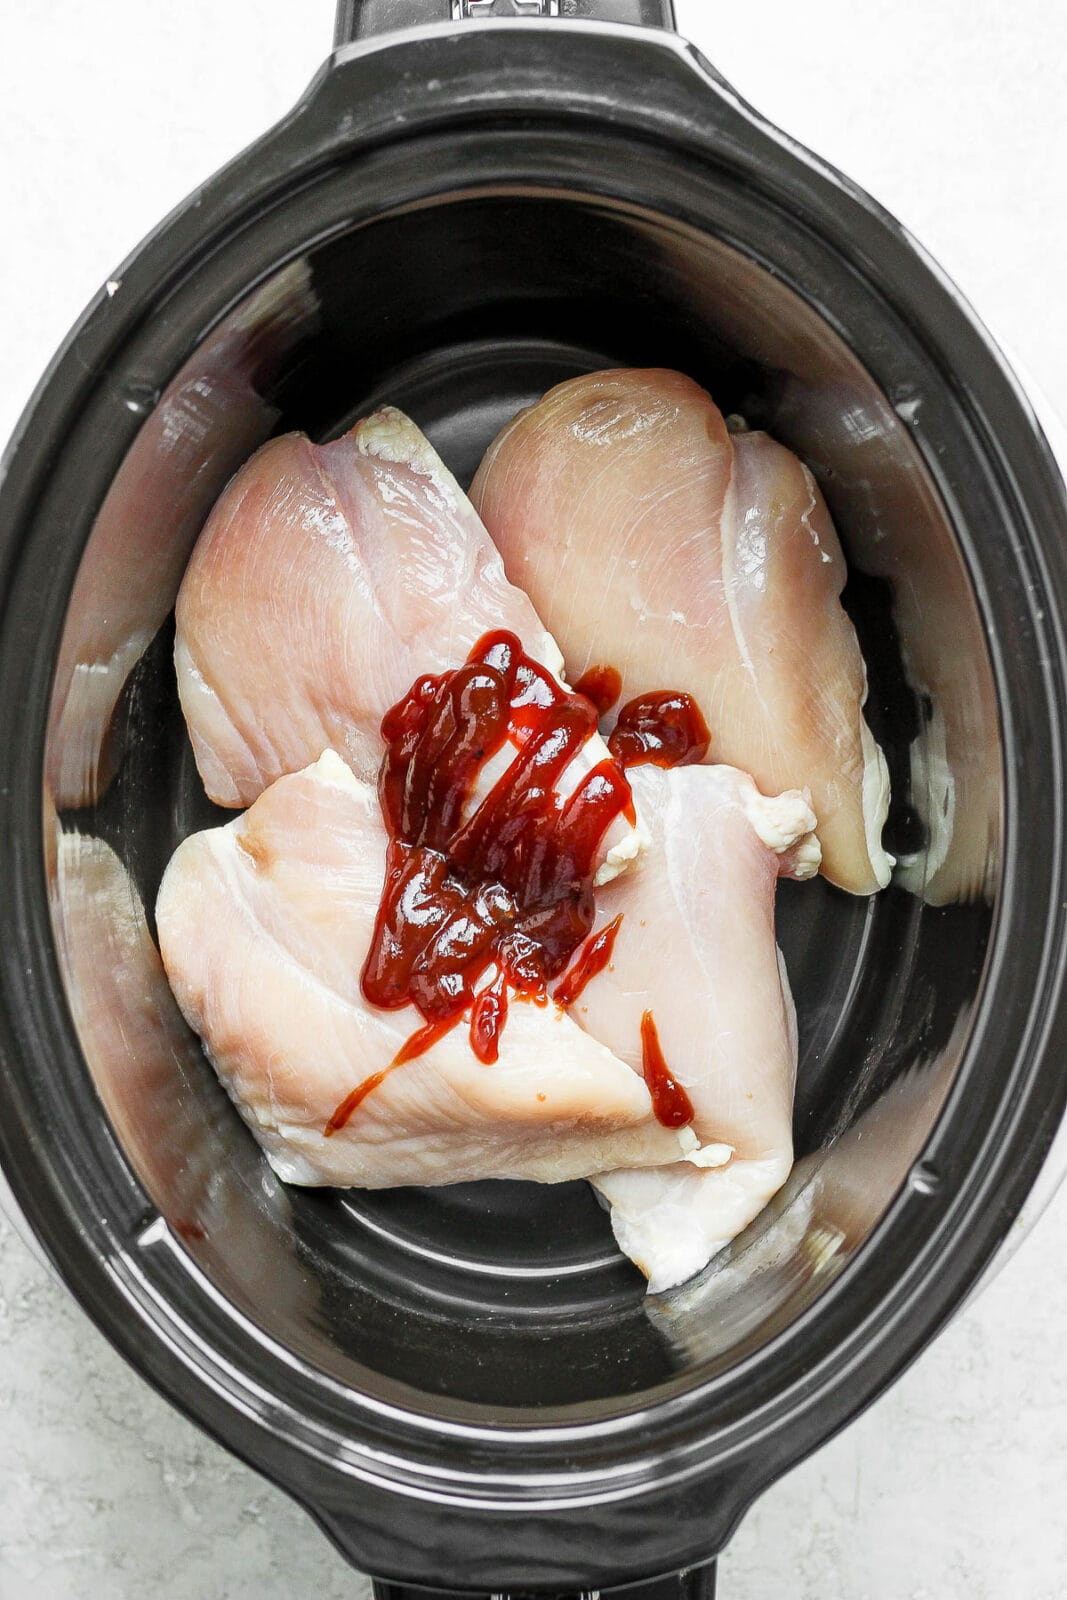 Raw chicken breasts in a crockpot with some BBQ sauce.